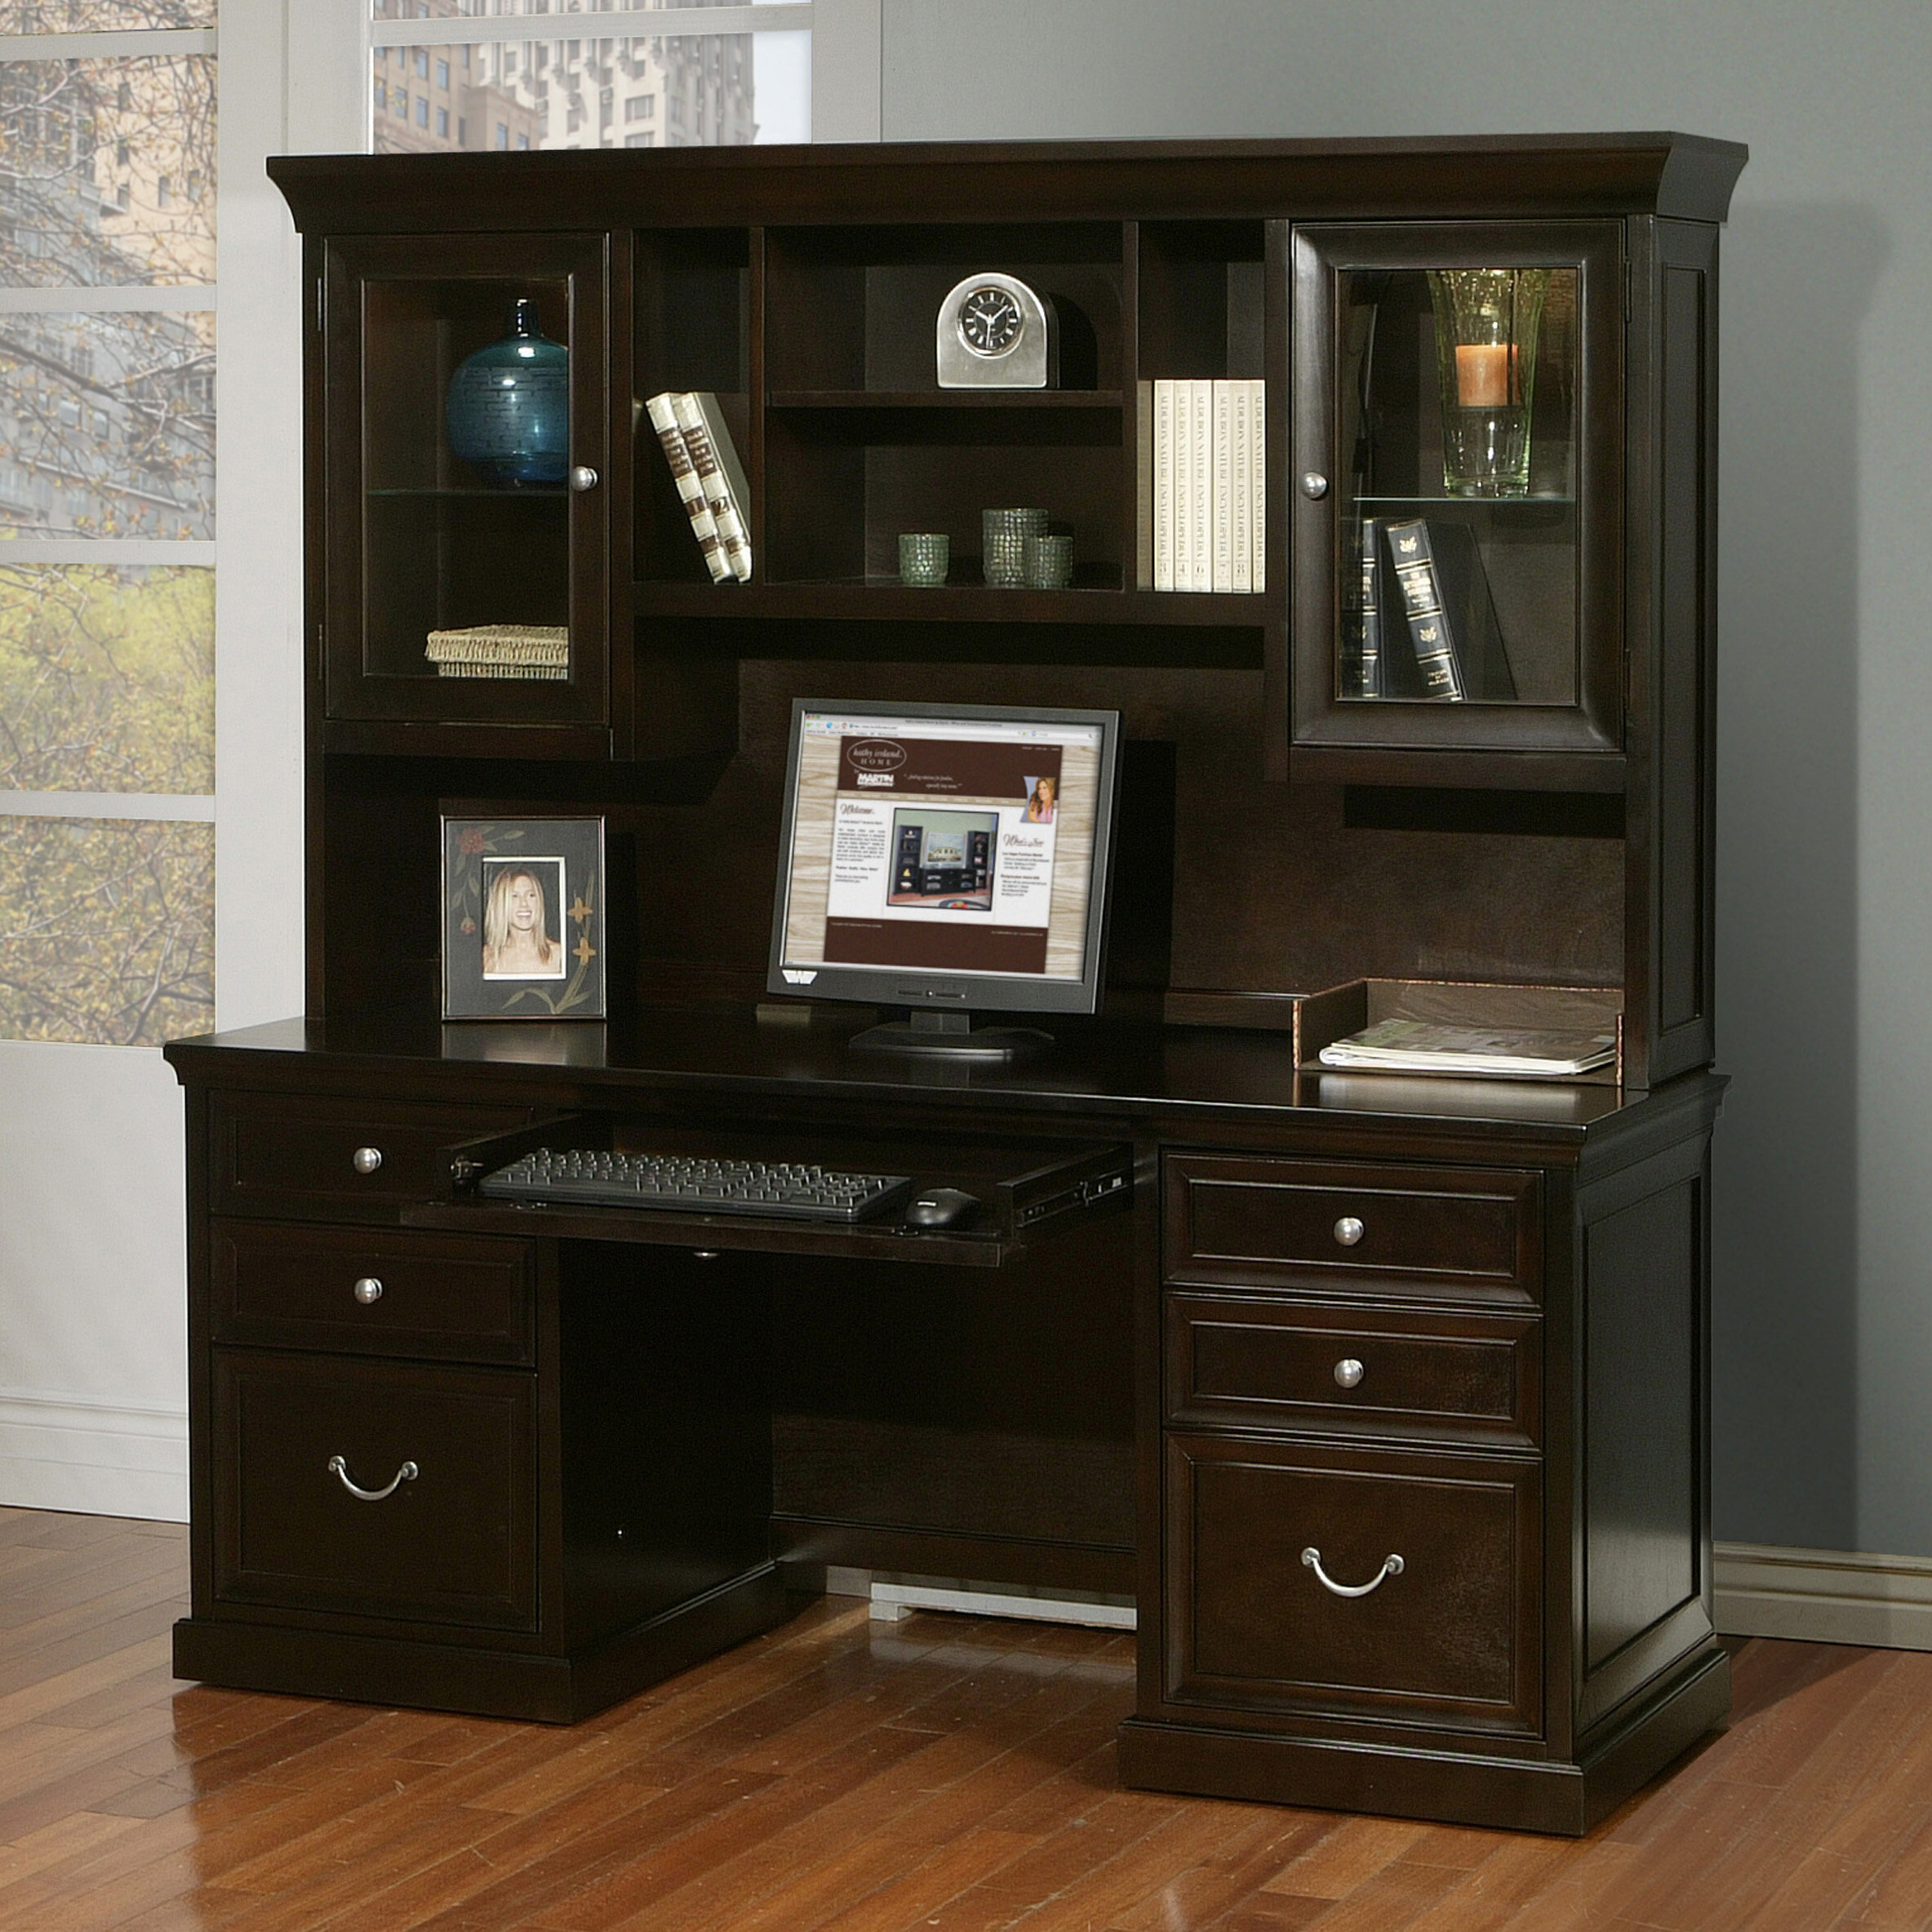 Superbe Darby Home Co Robbie Solid Wood Executive Desk With Hutch U0026 Reviews |  Wayfair